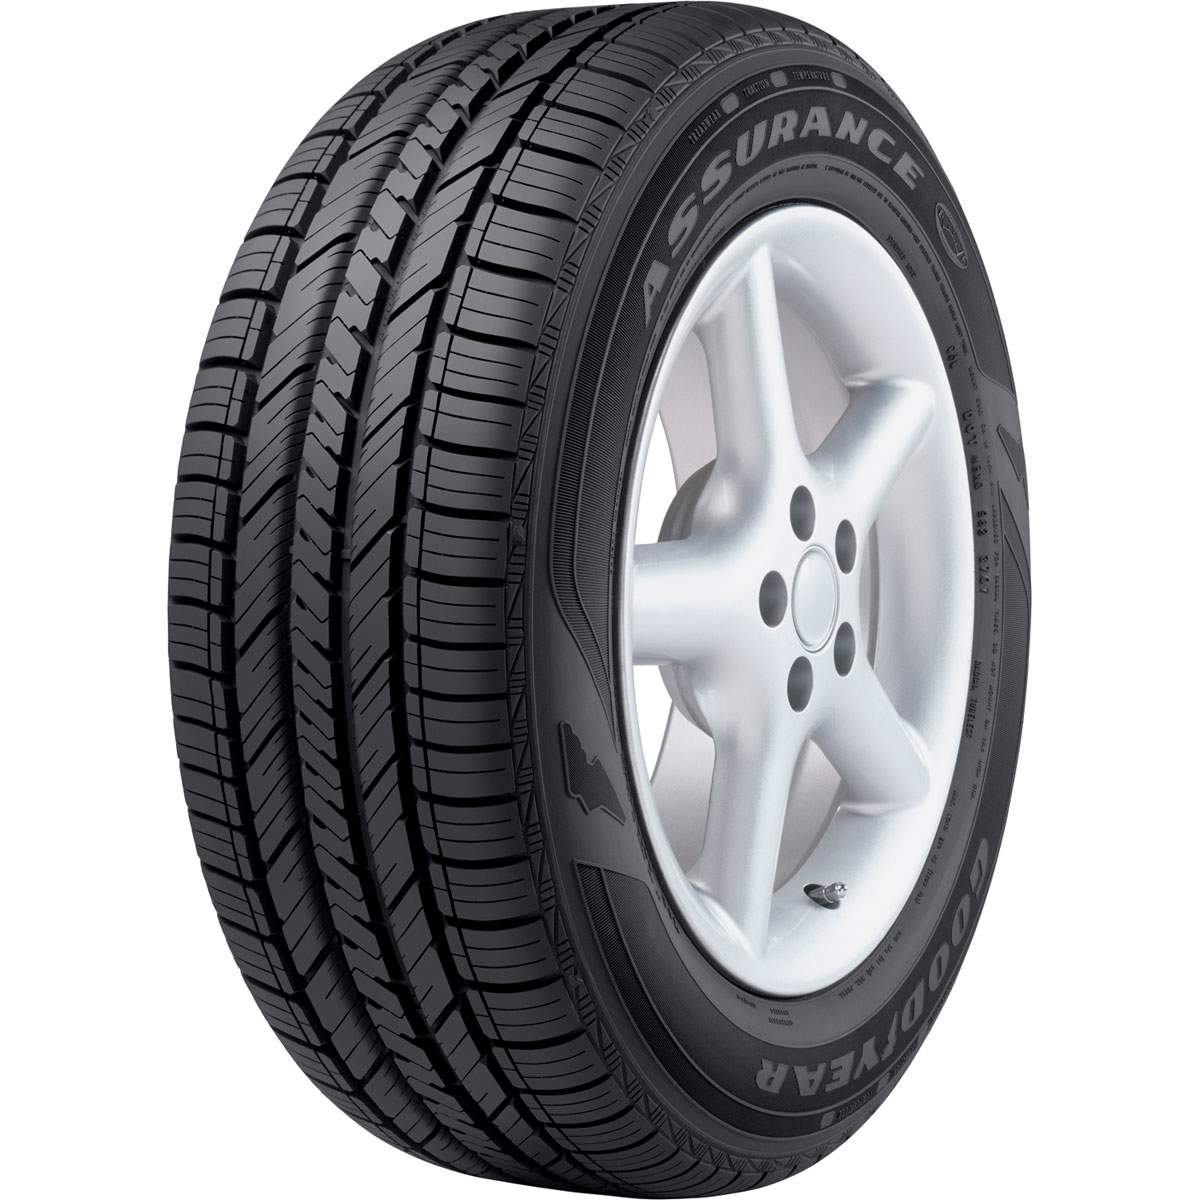 Goodyear FUELMAX D Performance: Review & Rating - Tire Reviews and More